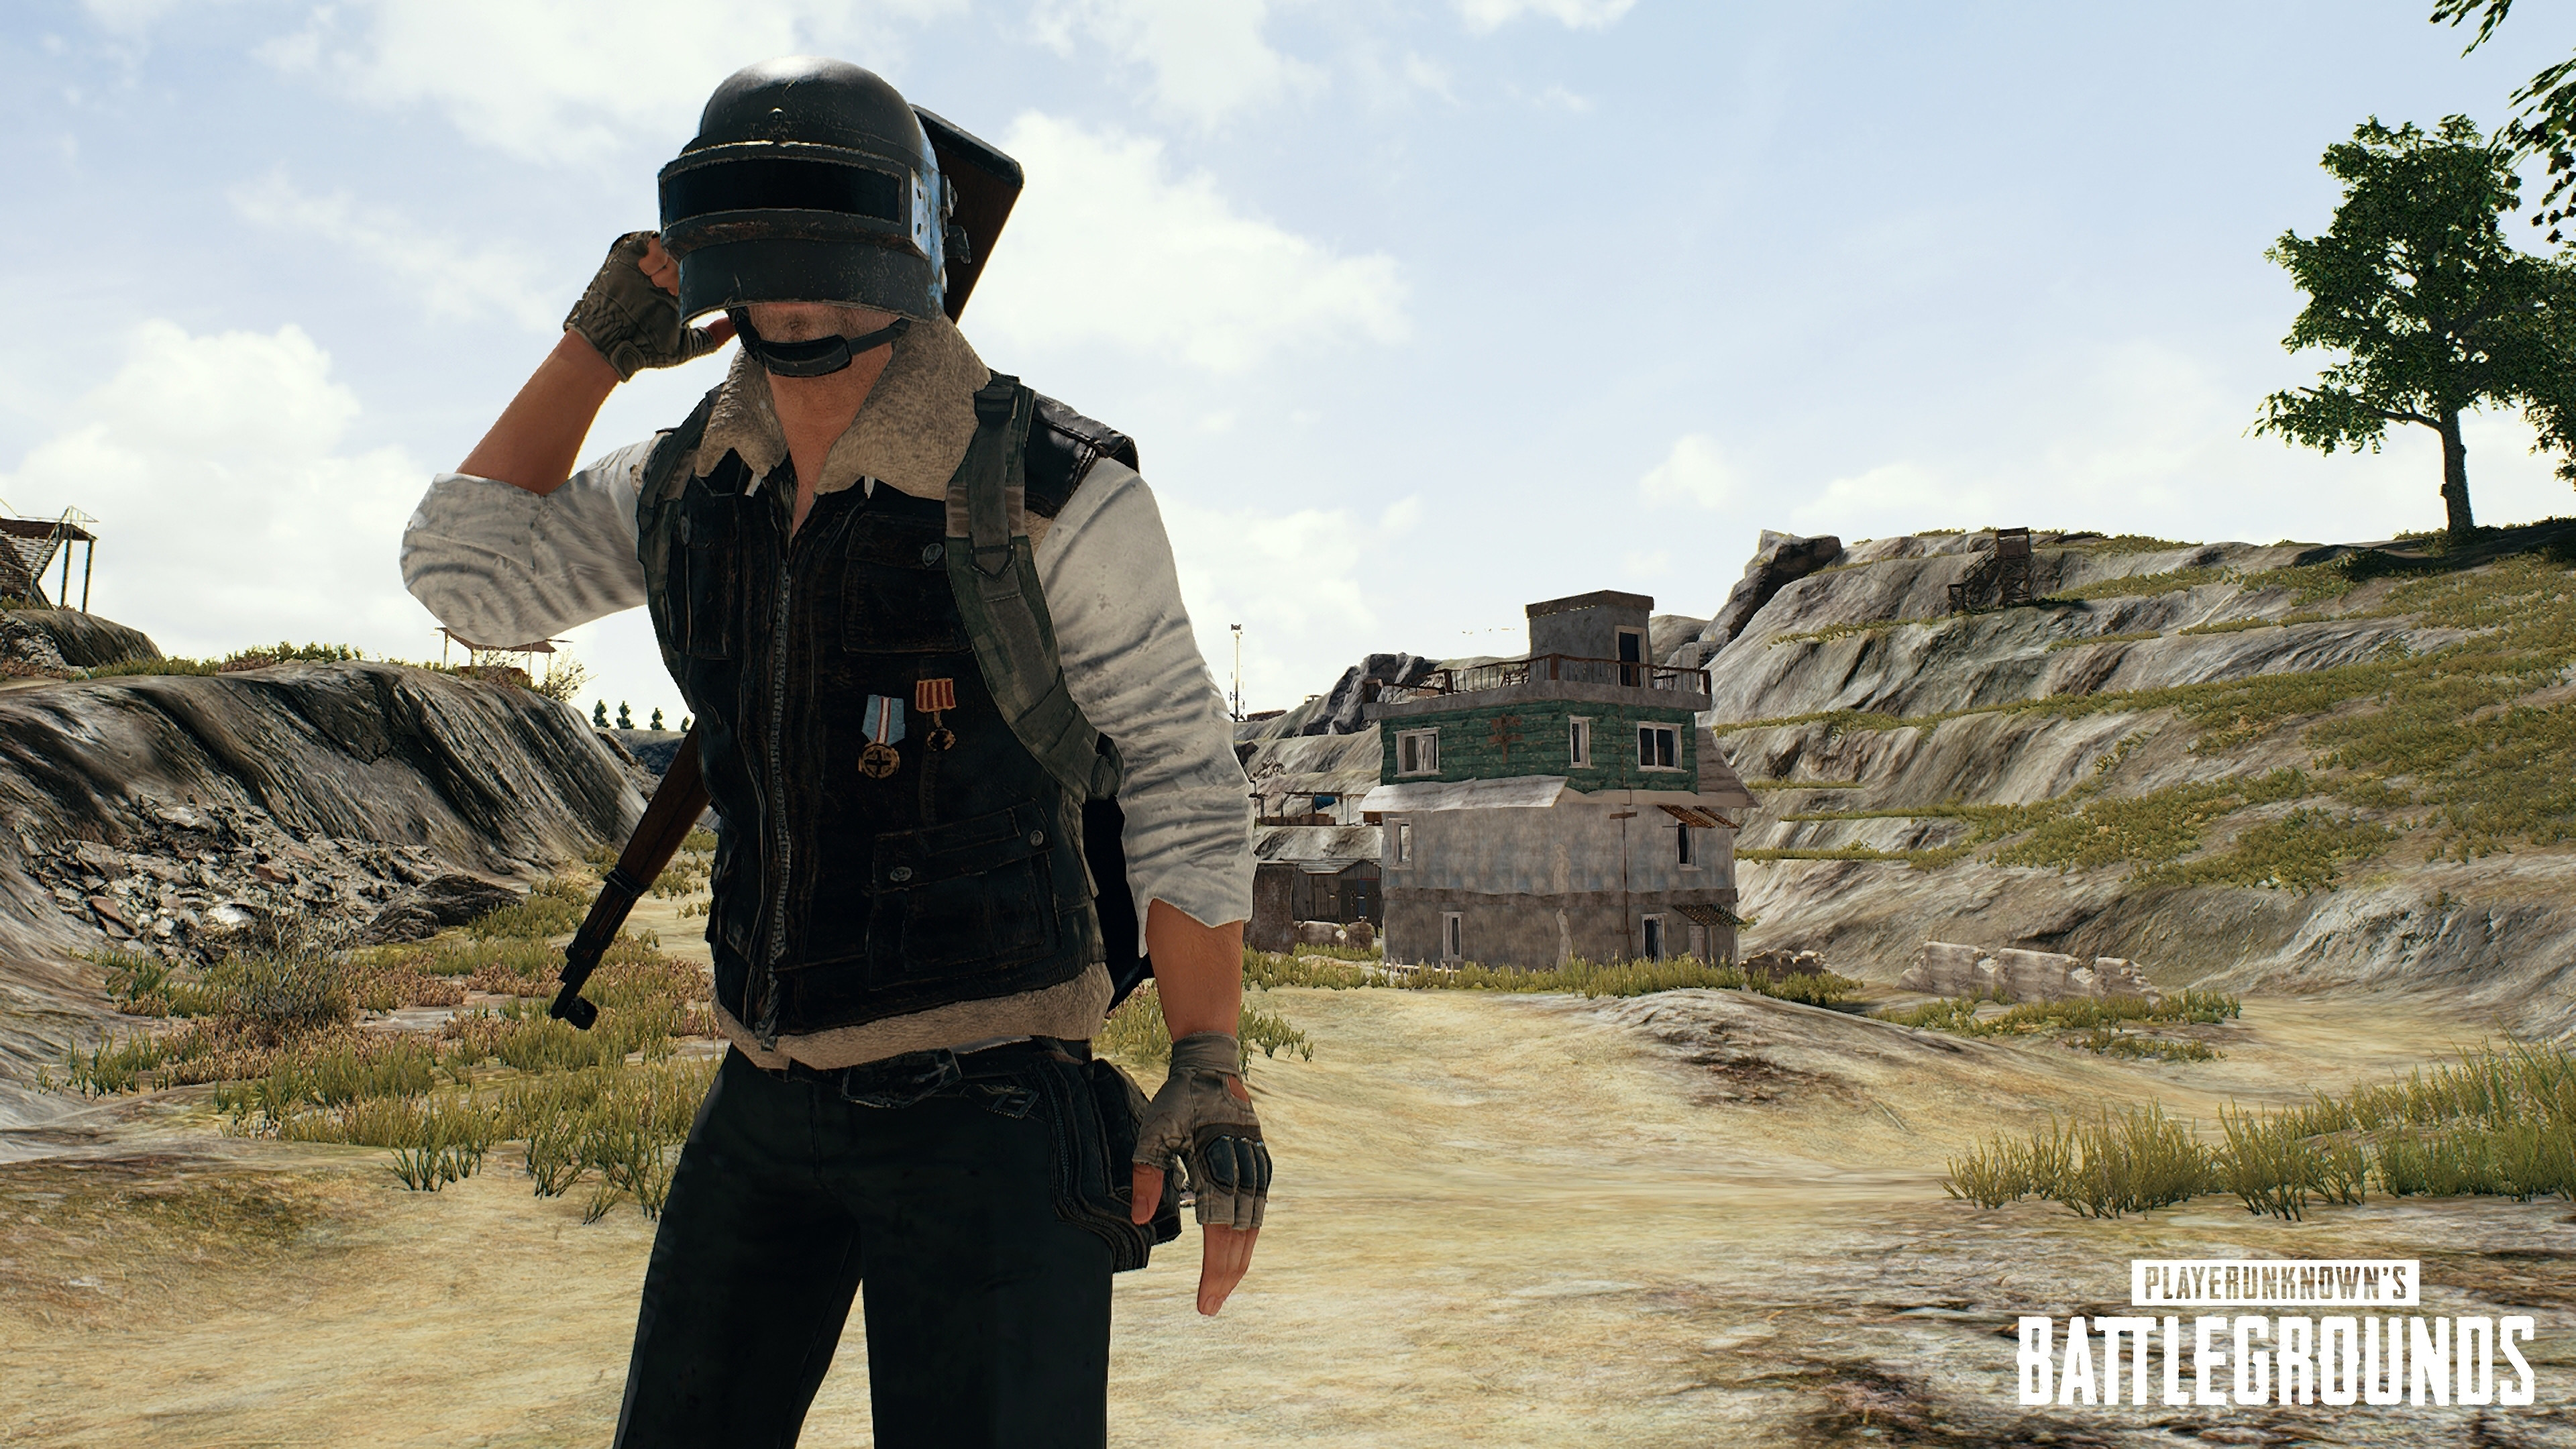 Playerunknown S Battlegrounds Wallpaper M4: PUBG PUBG PlayerUnknown's Battlegrounds 4K Wallpaper